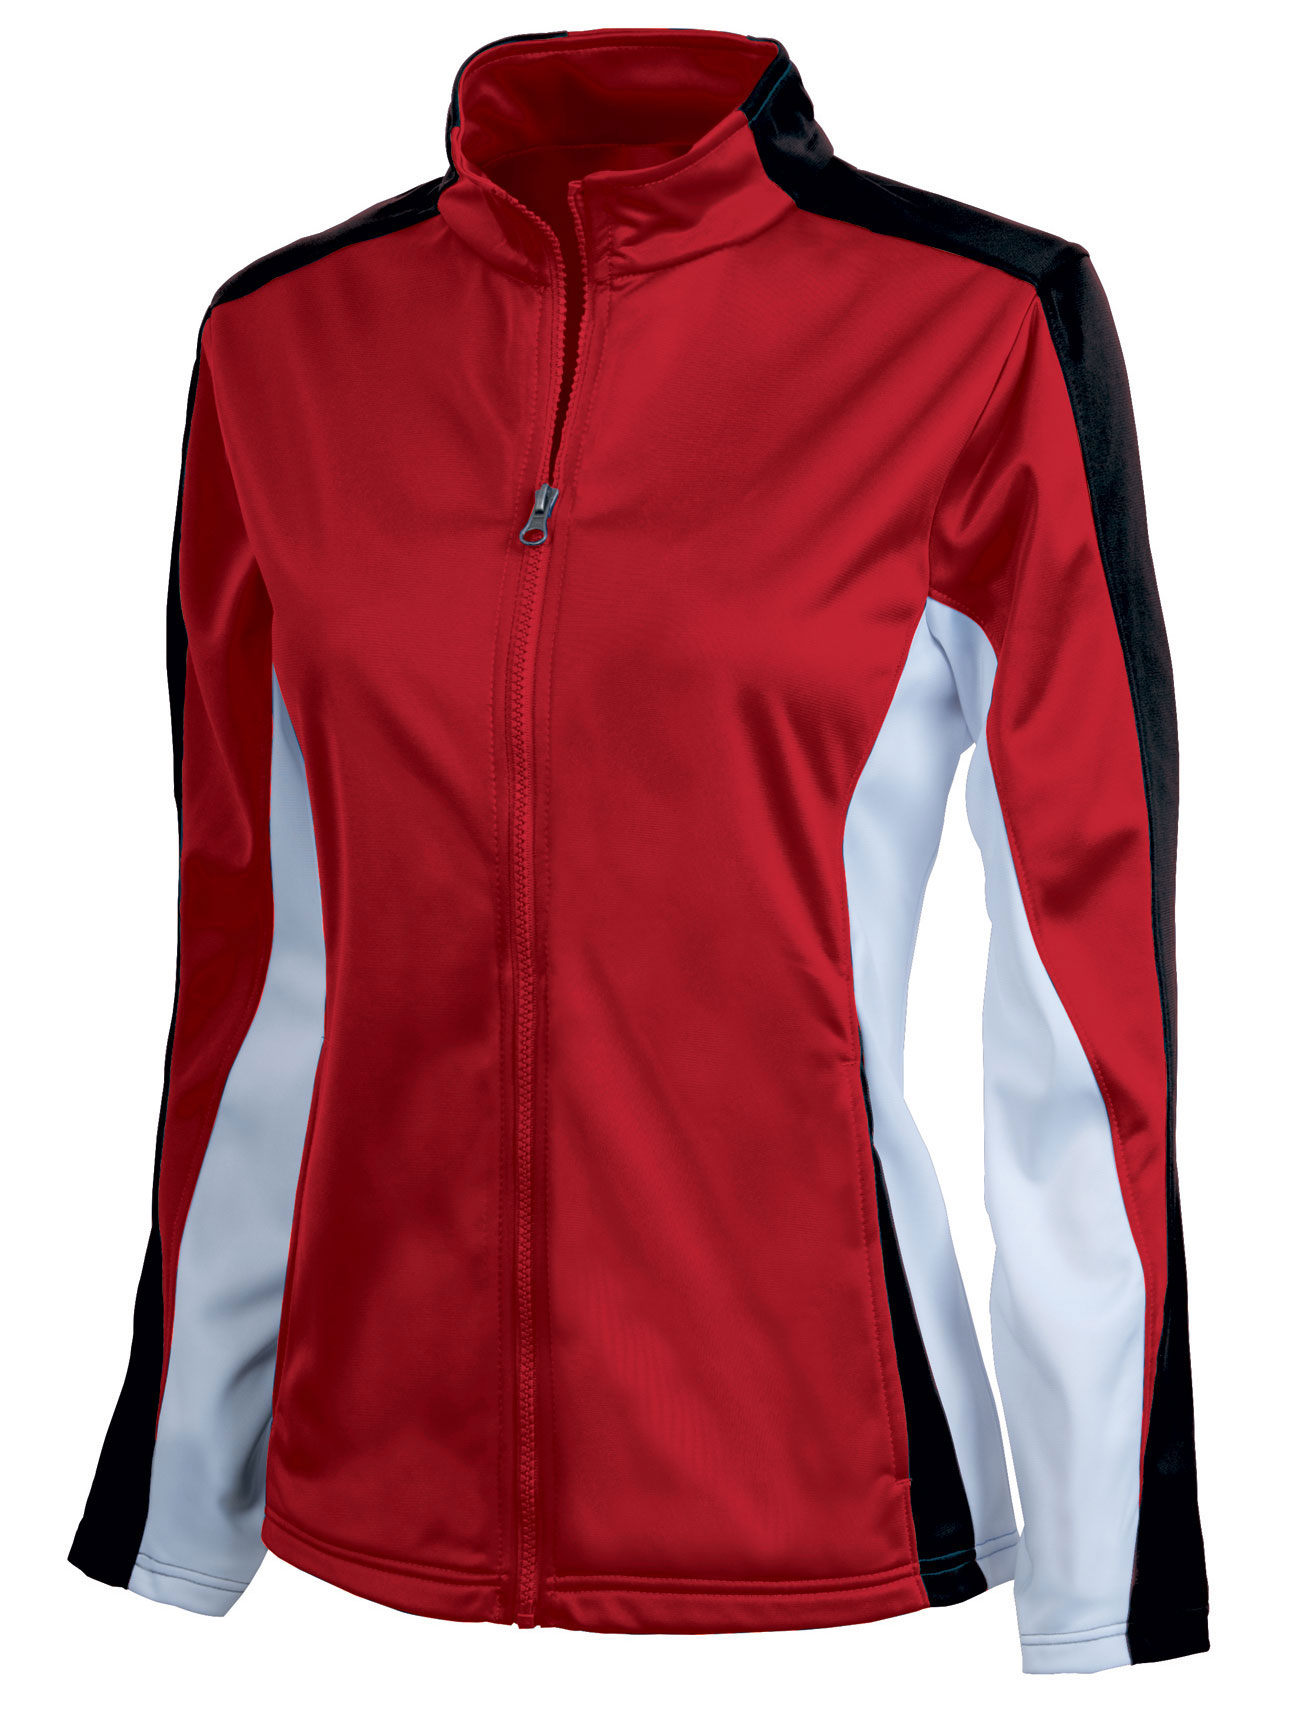 Youth Girls Energy Jacket